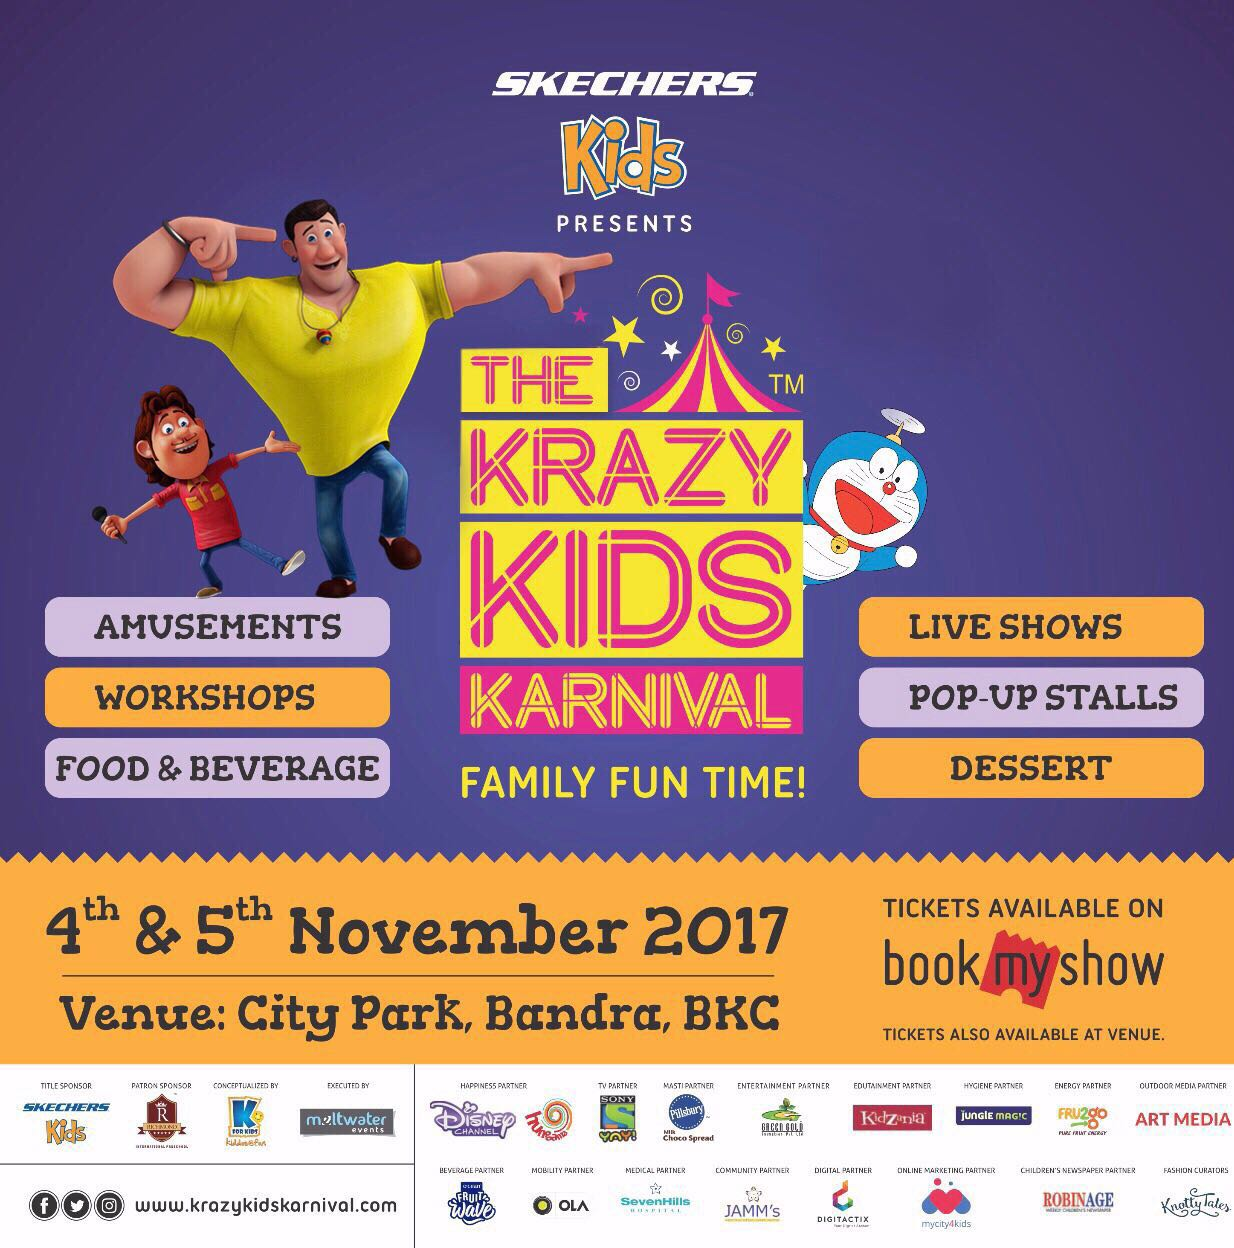 Krazy Kids Karnival – Fun & Activities